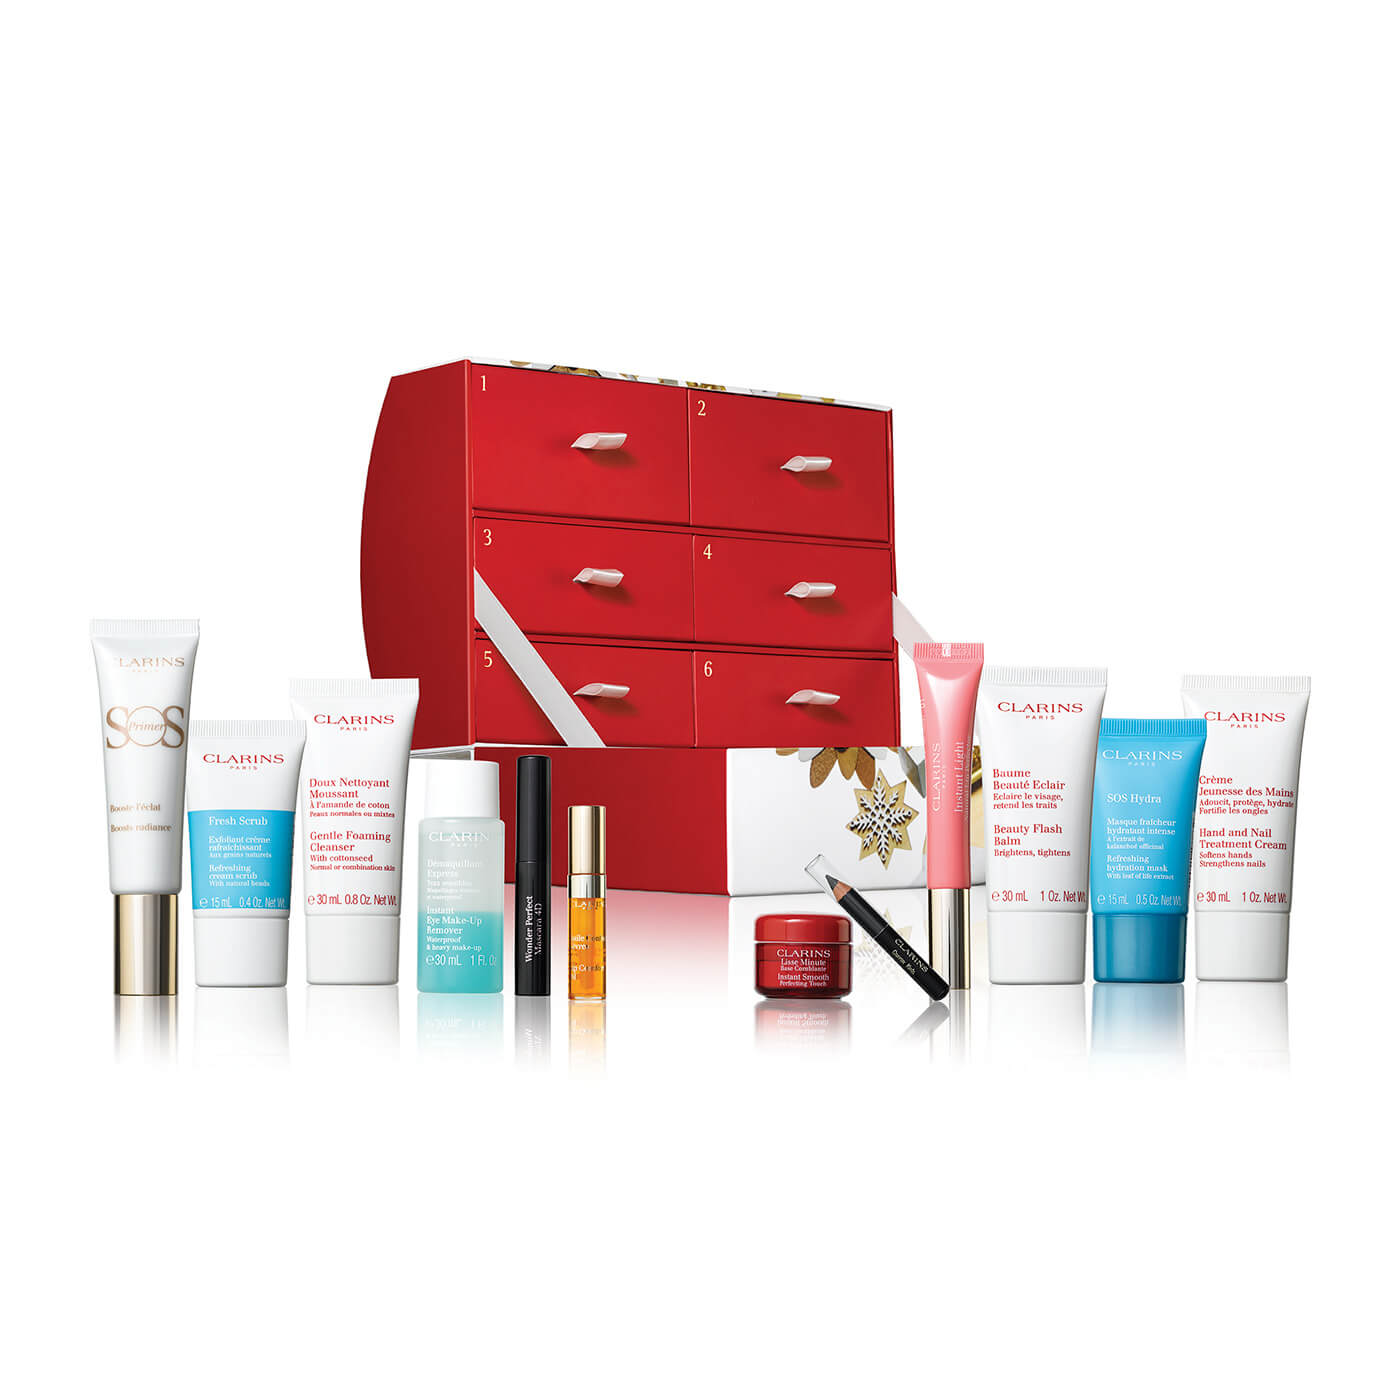 12 Days of Christmas Advent Calendar for Women by Clarins